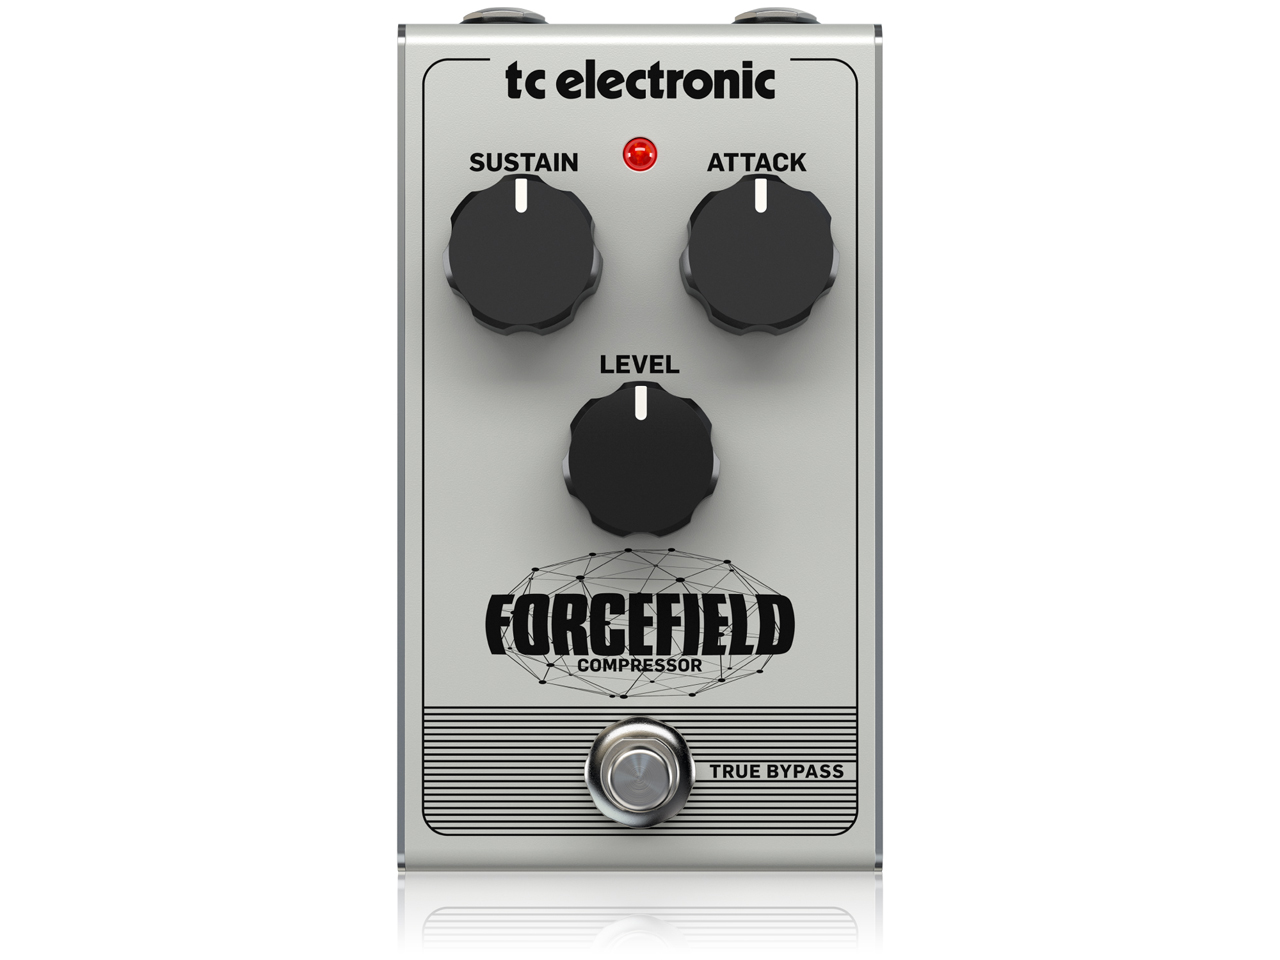 tc electronic(ティーシーエレクトロニック) FORCEFIELD COMPRESSOR (コンプレッサー)